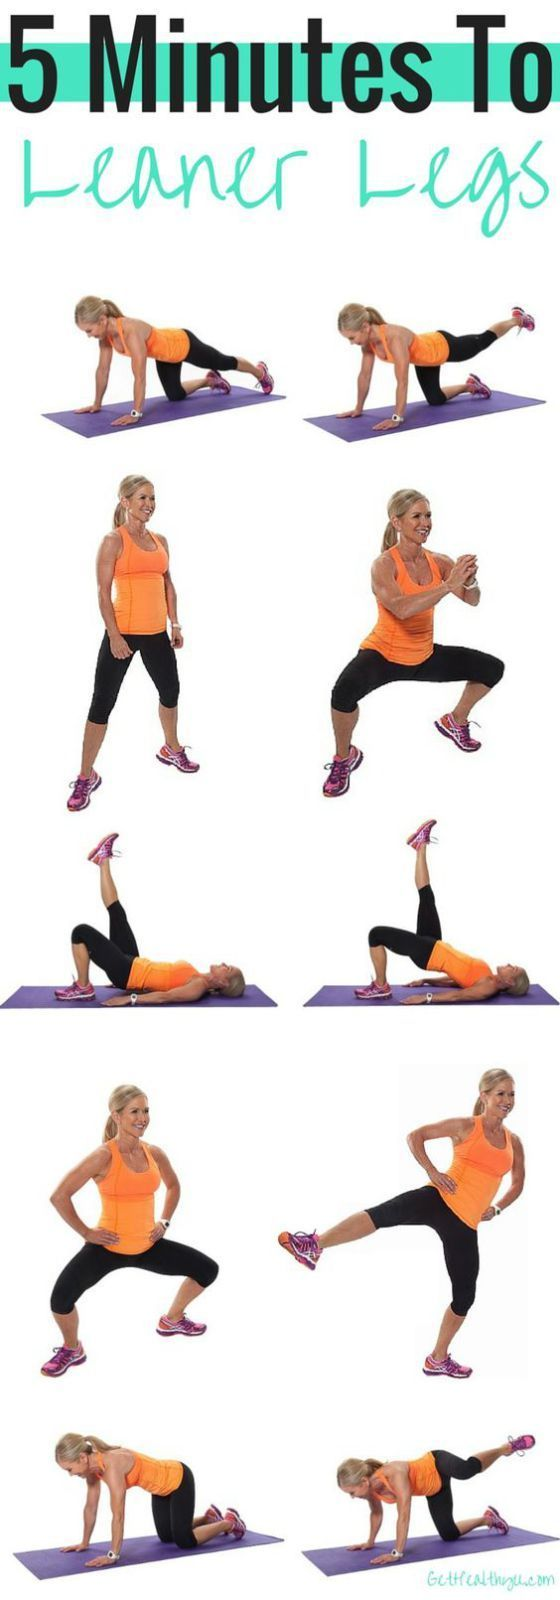 Amazing Minute Workouts To Tone Your Abs Inner Thighs Butt